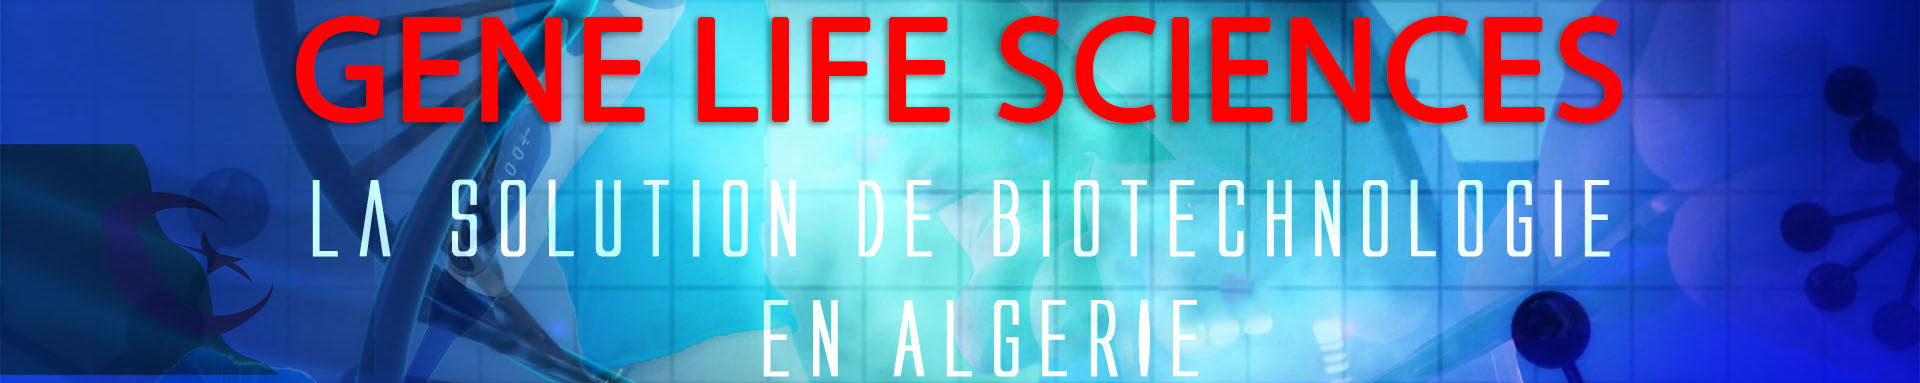 Gene Life Sciences